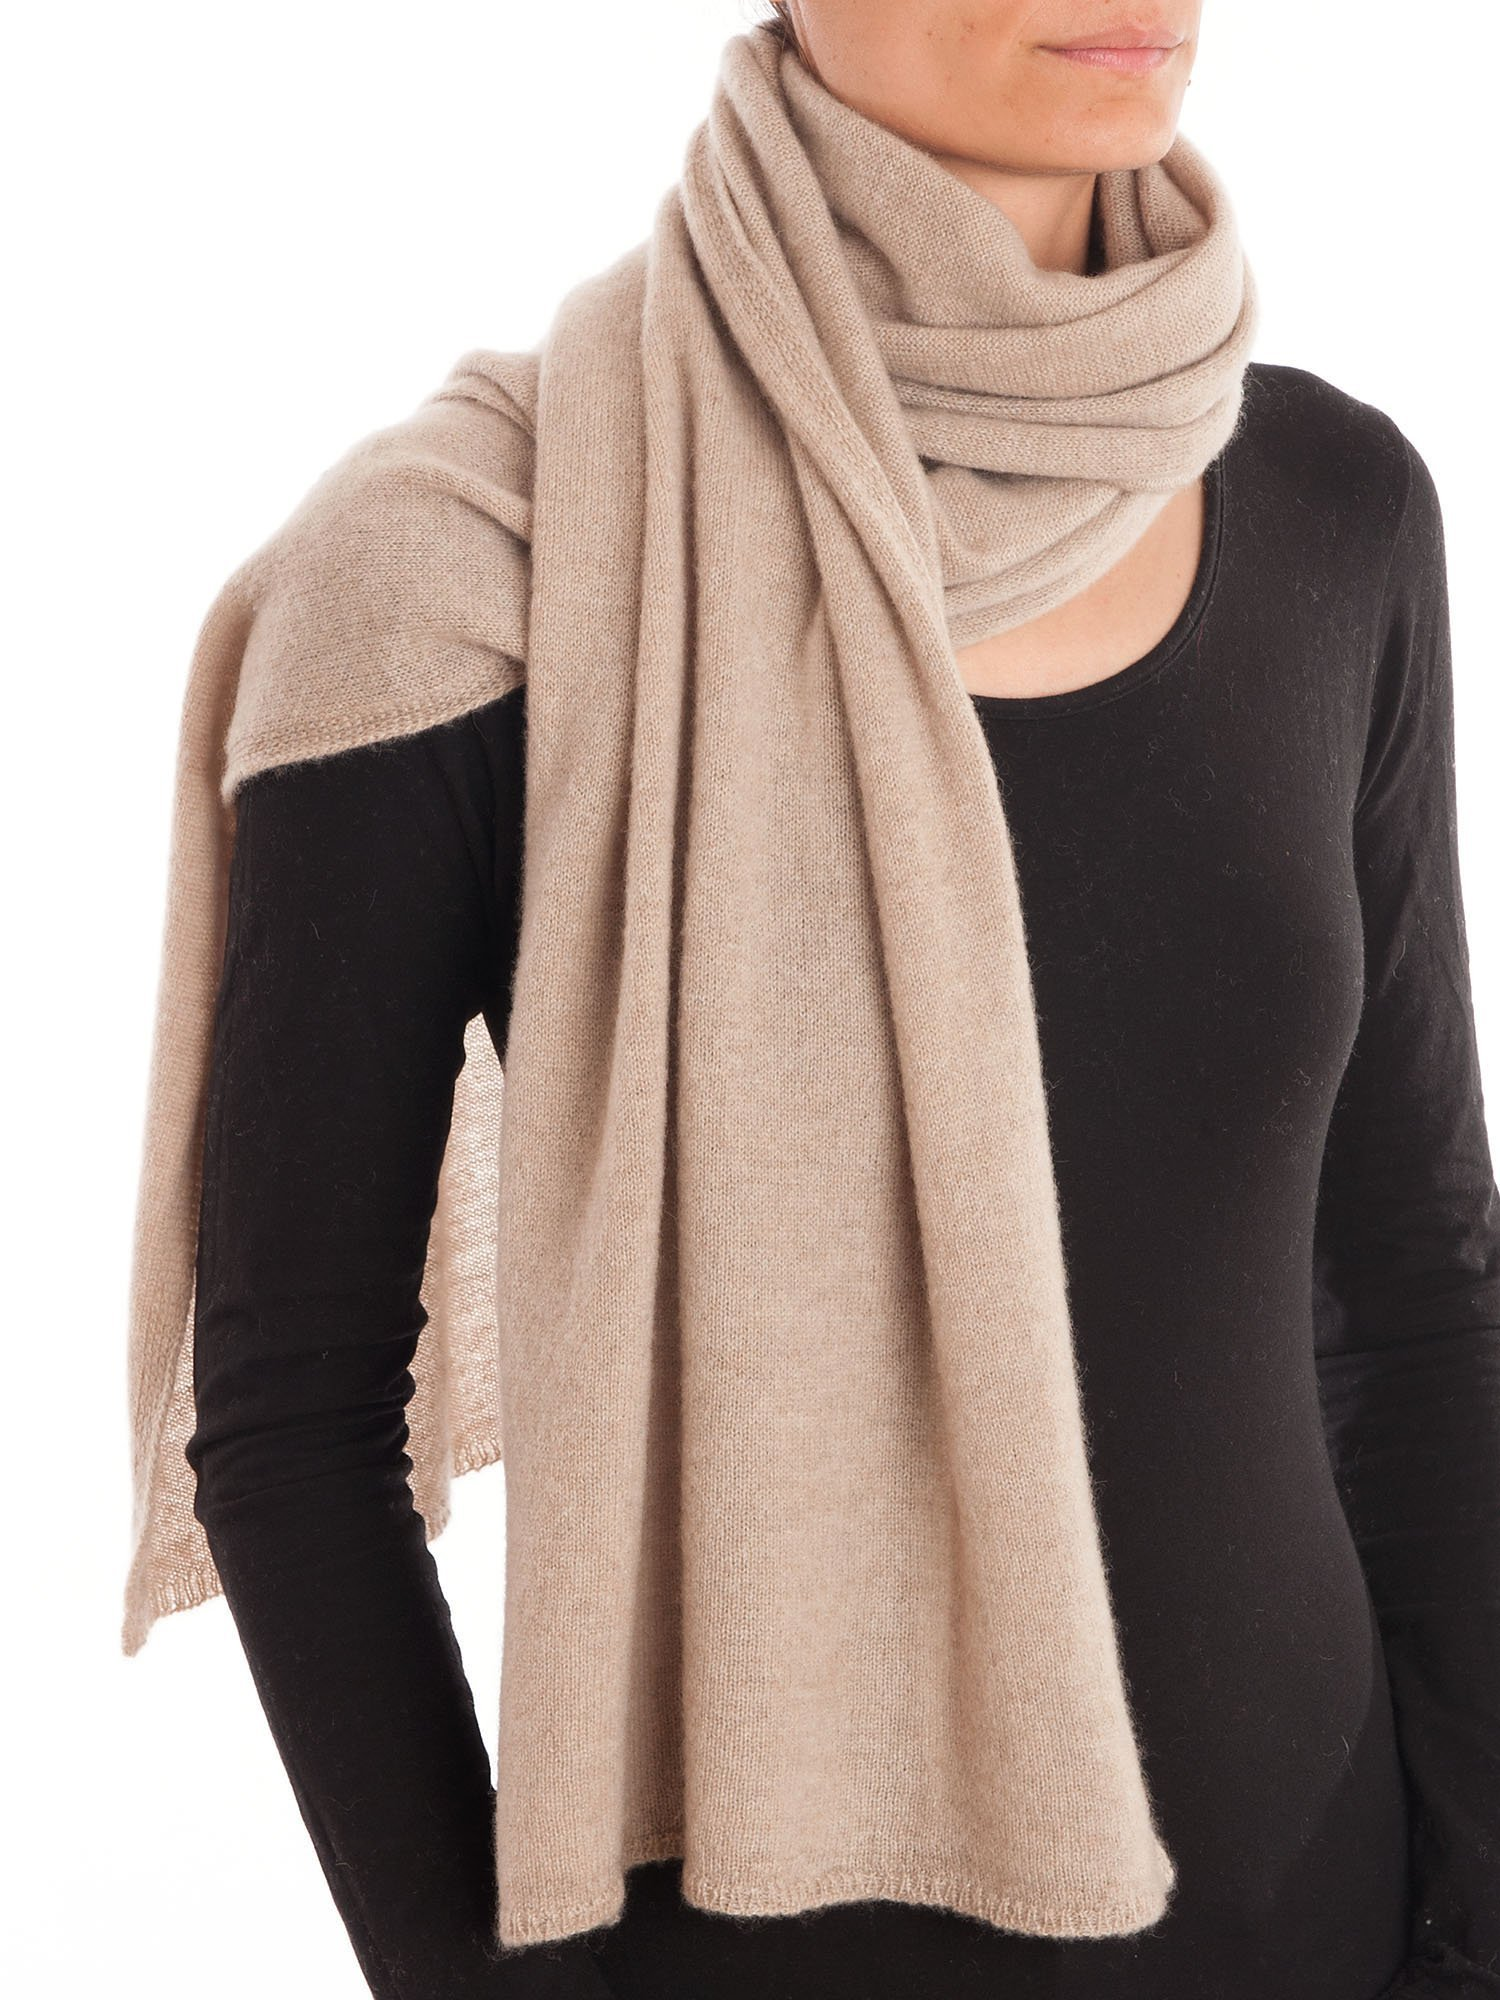 Dalle Piane Cashmere - Scarf 100% cashmere - Made in Italy - Woman/Man, Color: Beige, One size